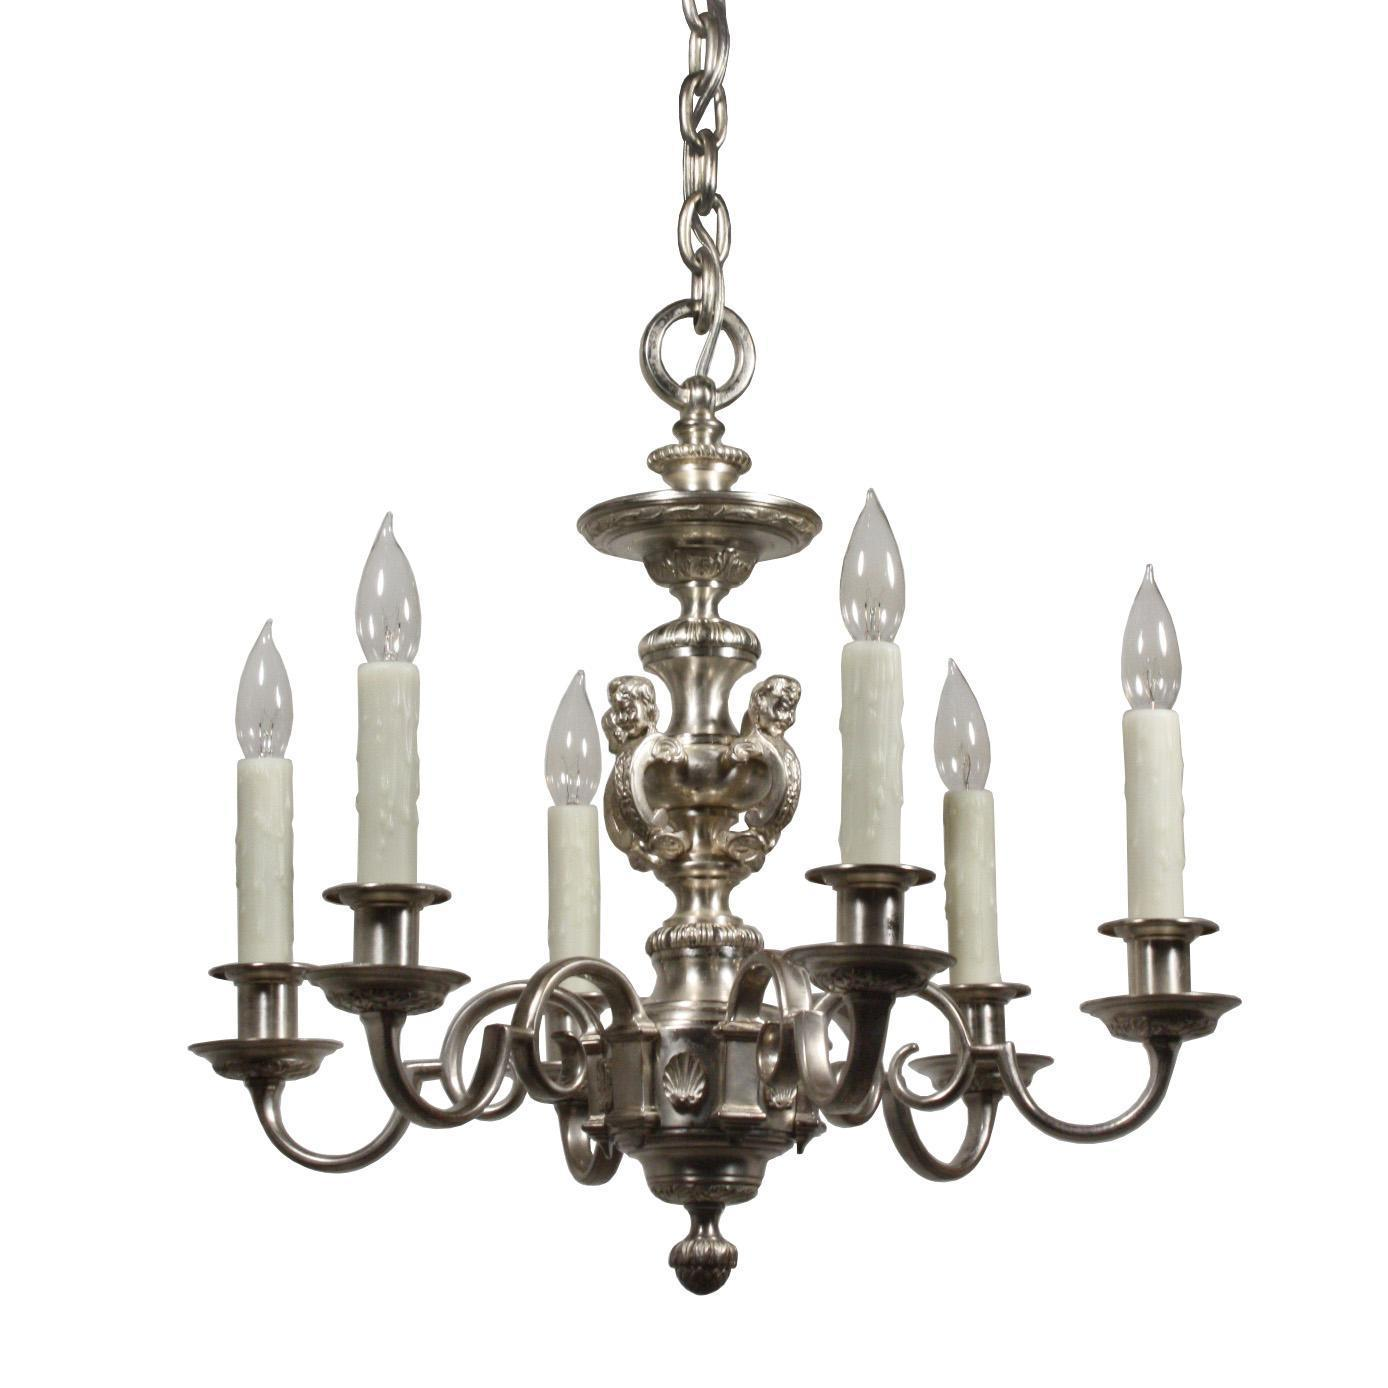 Incredible Antique Figural Silver-Plated Chandelier by E.F. Caldwell